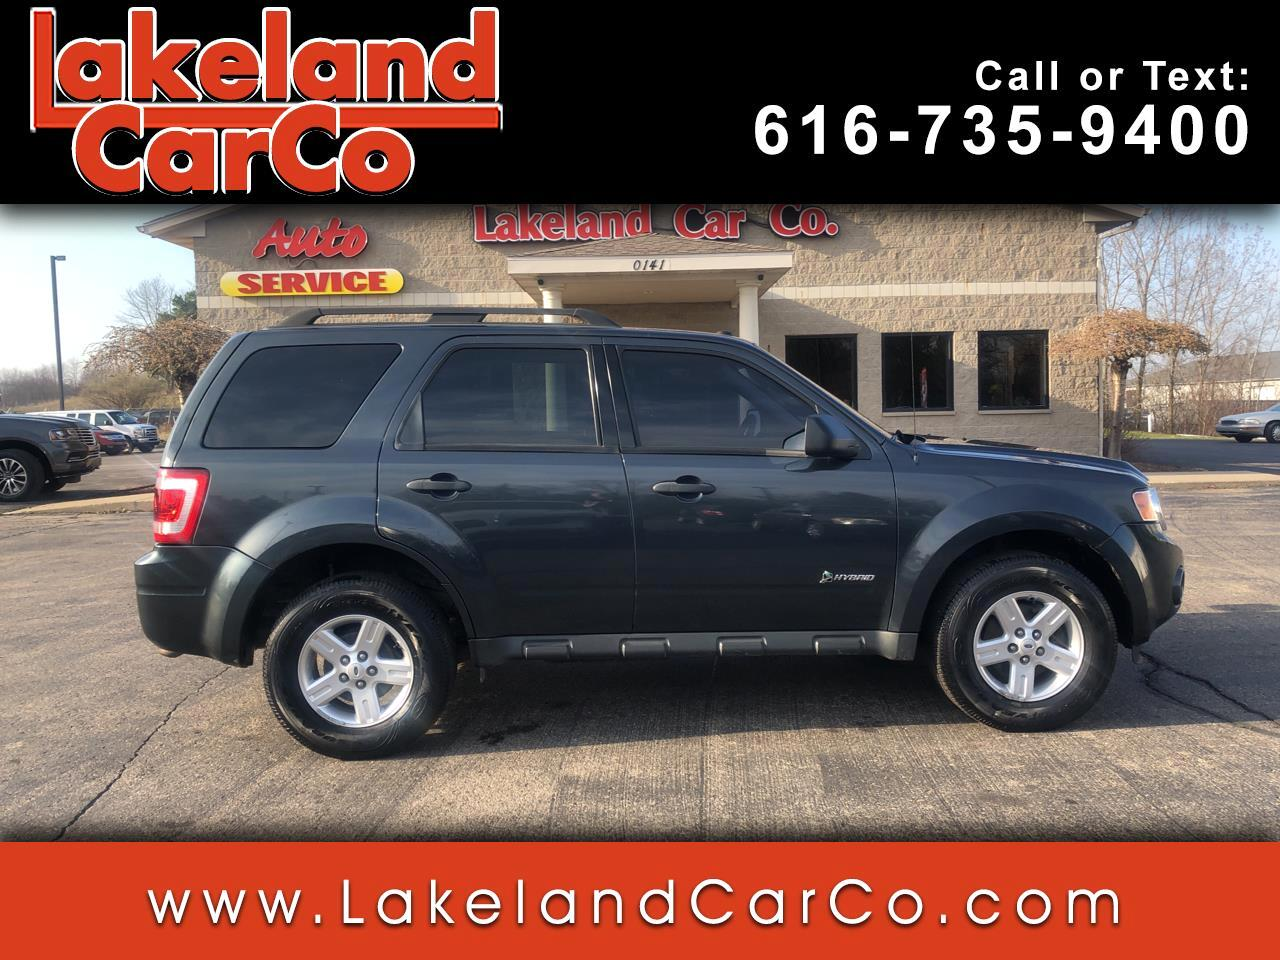 Ford Escape FWD 4dr I4 CVT Hybrid 2009